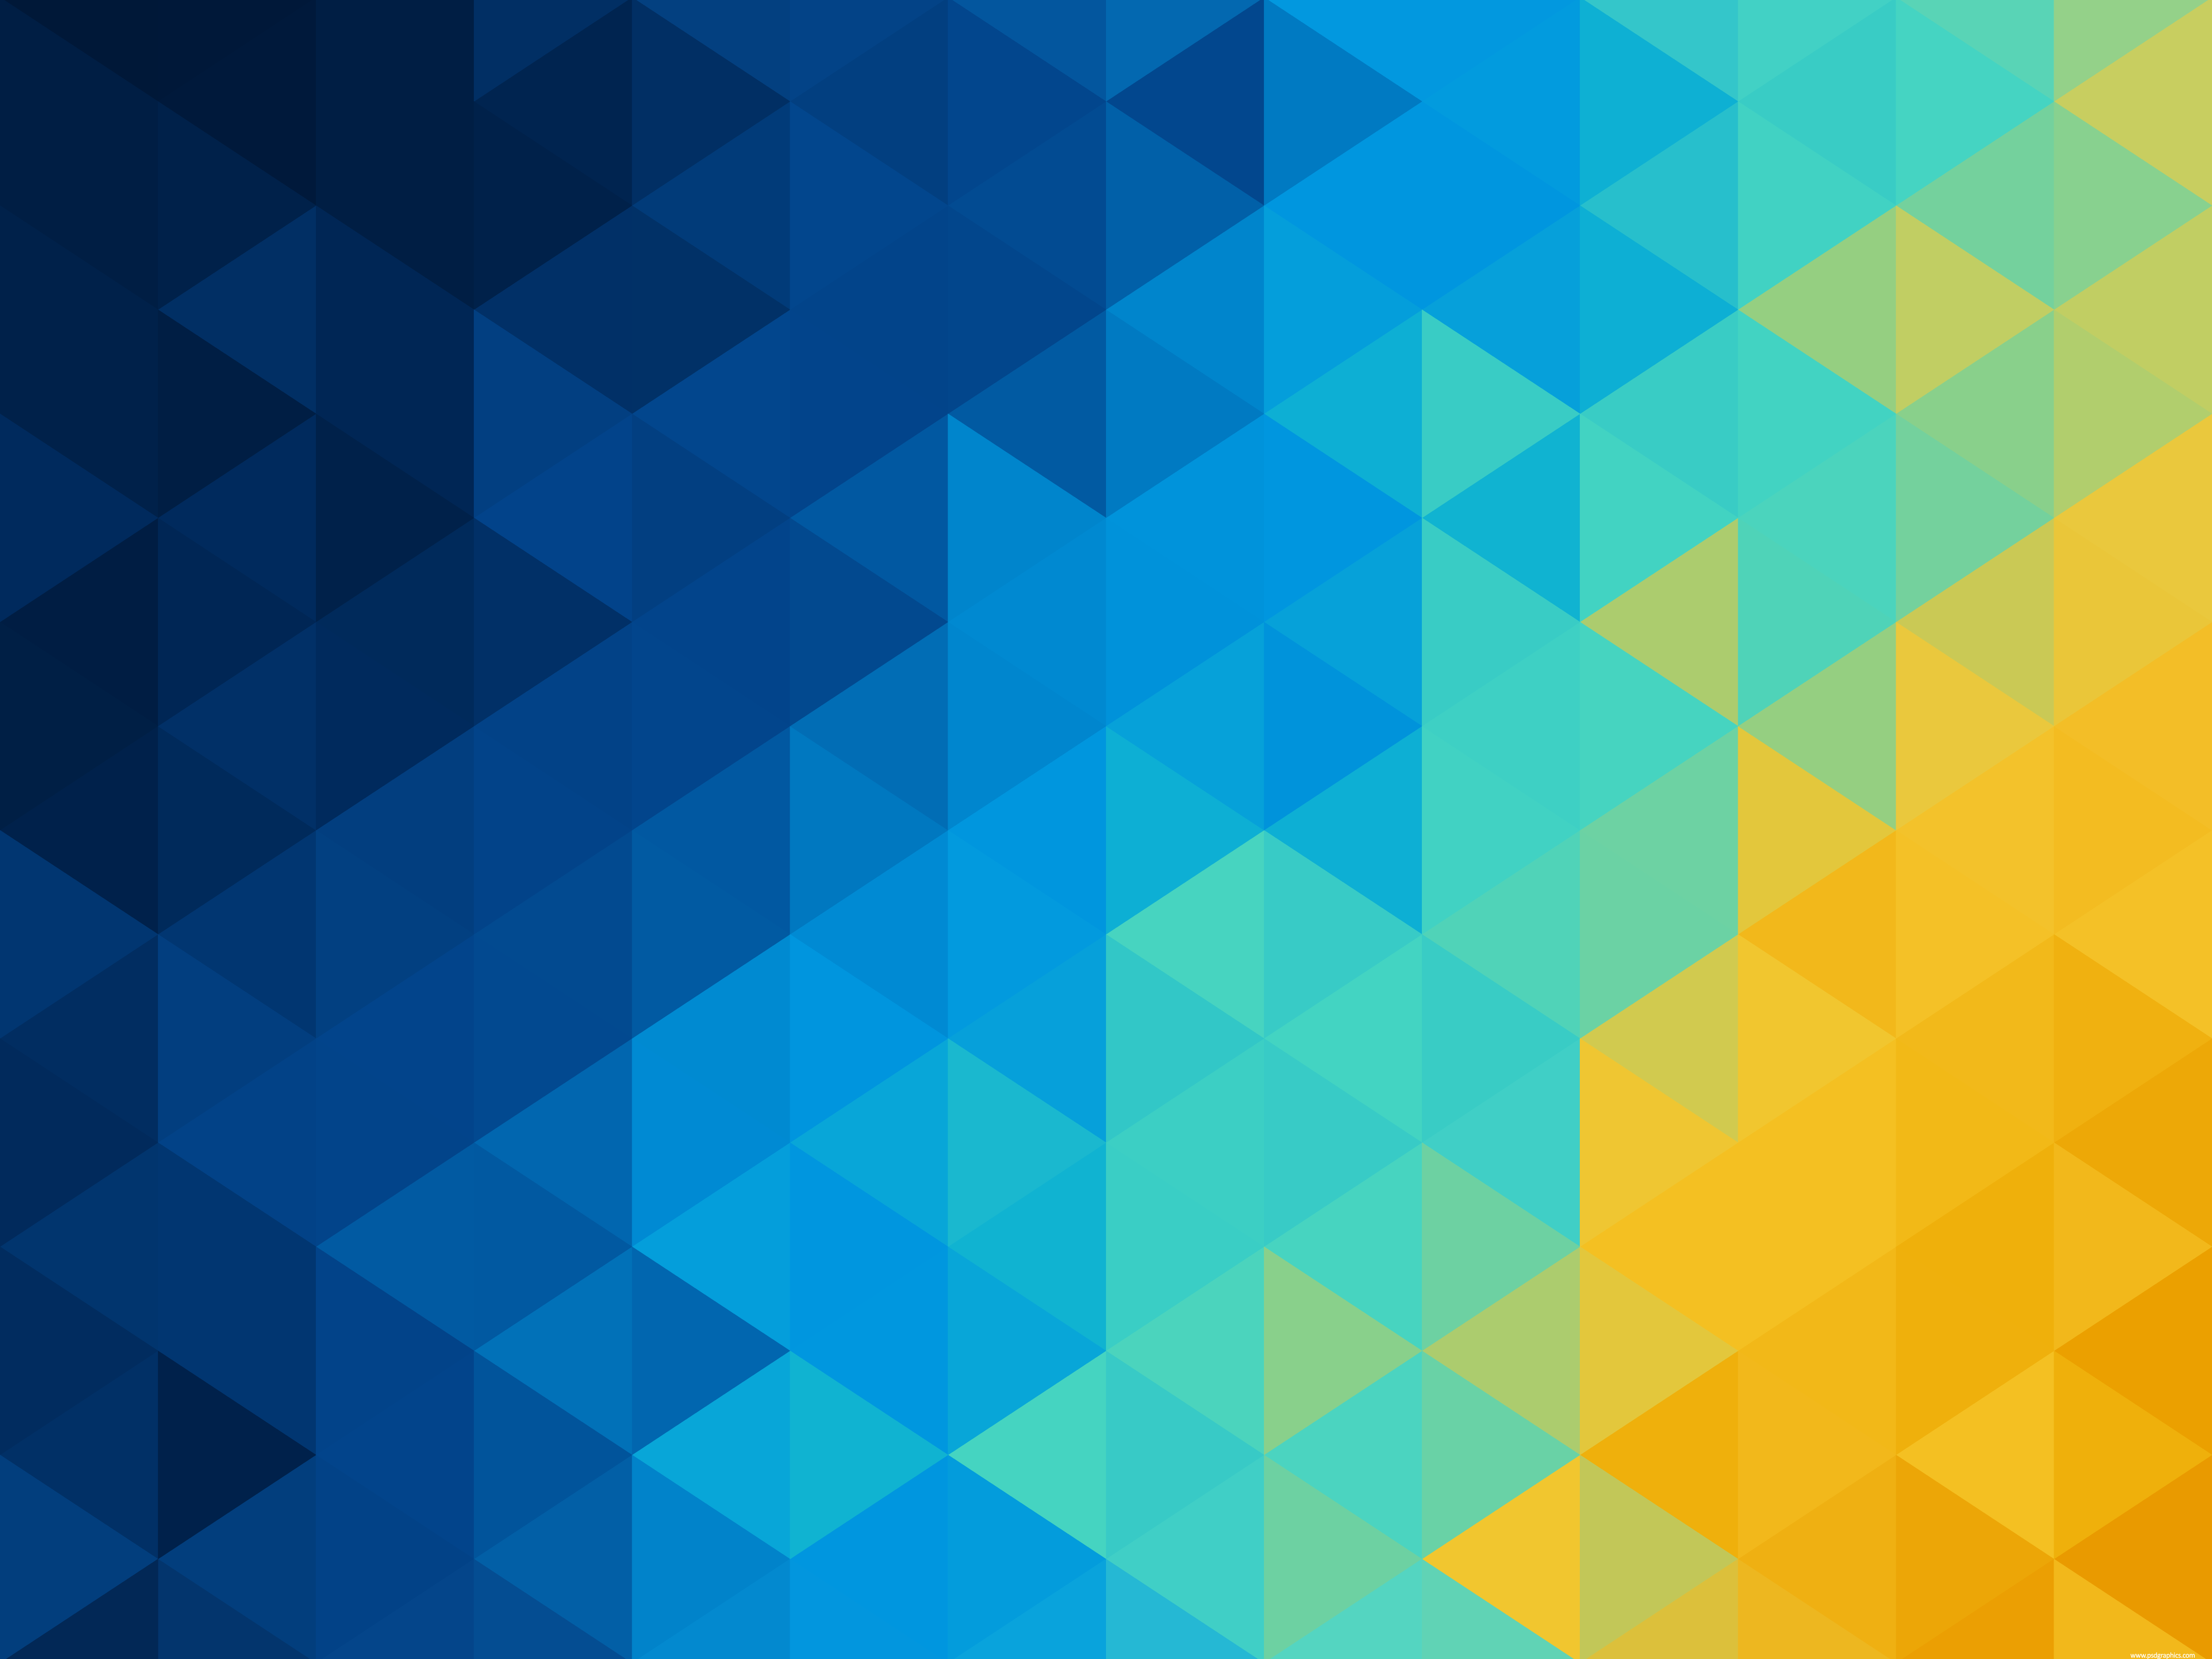 abstractmosaicbackground.png 5,000×3,750 pixels